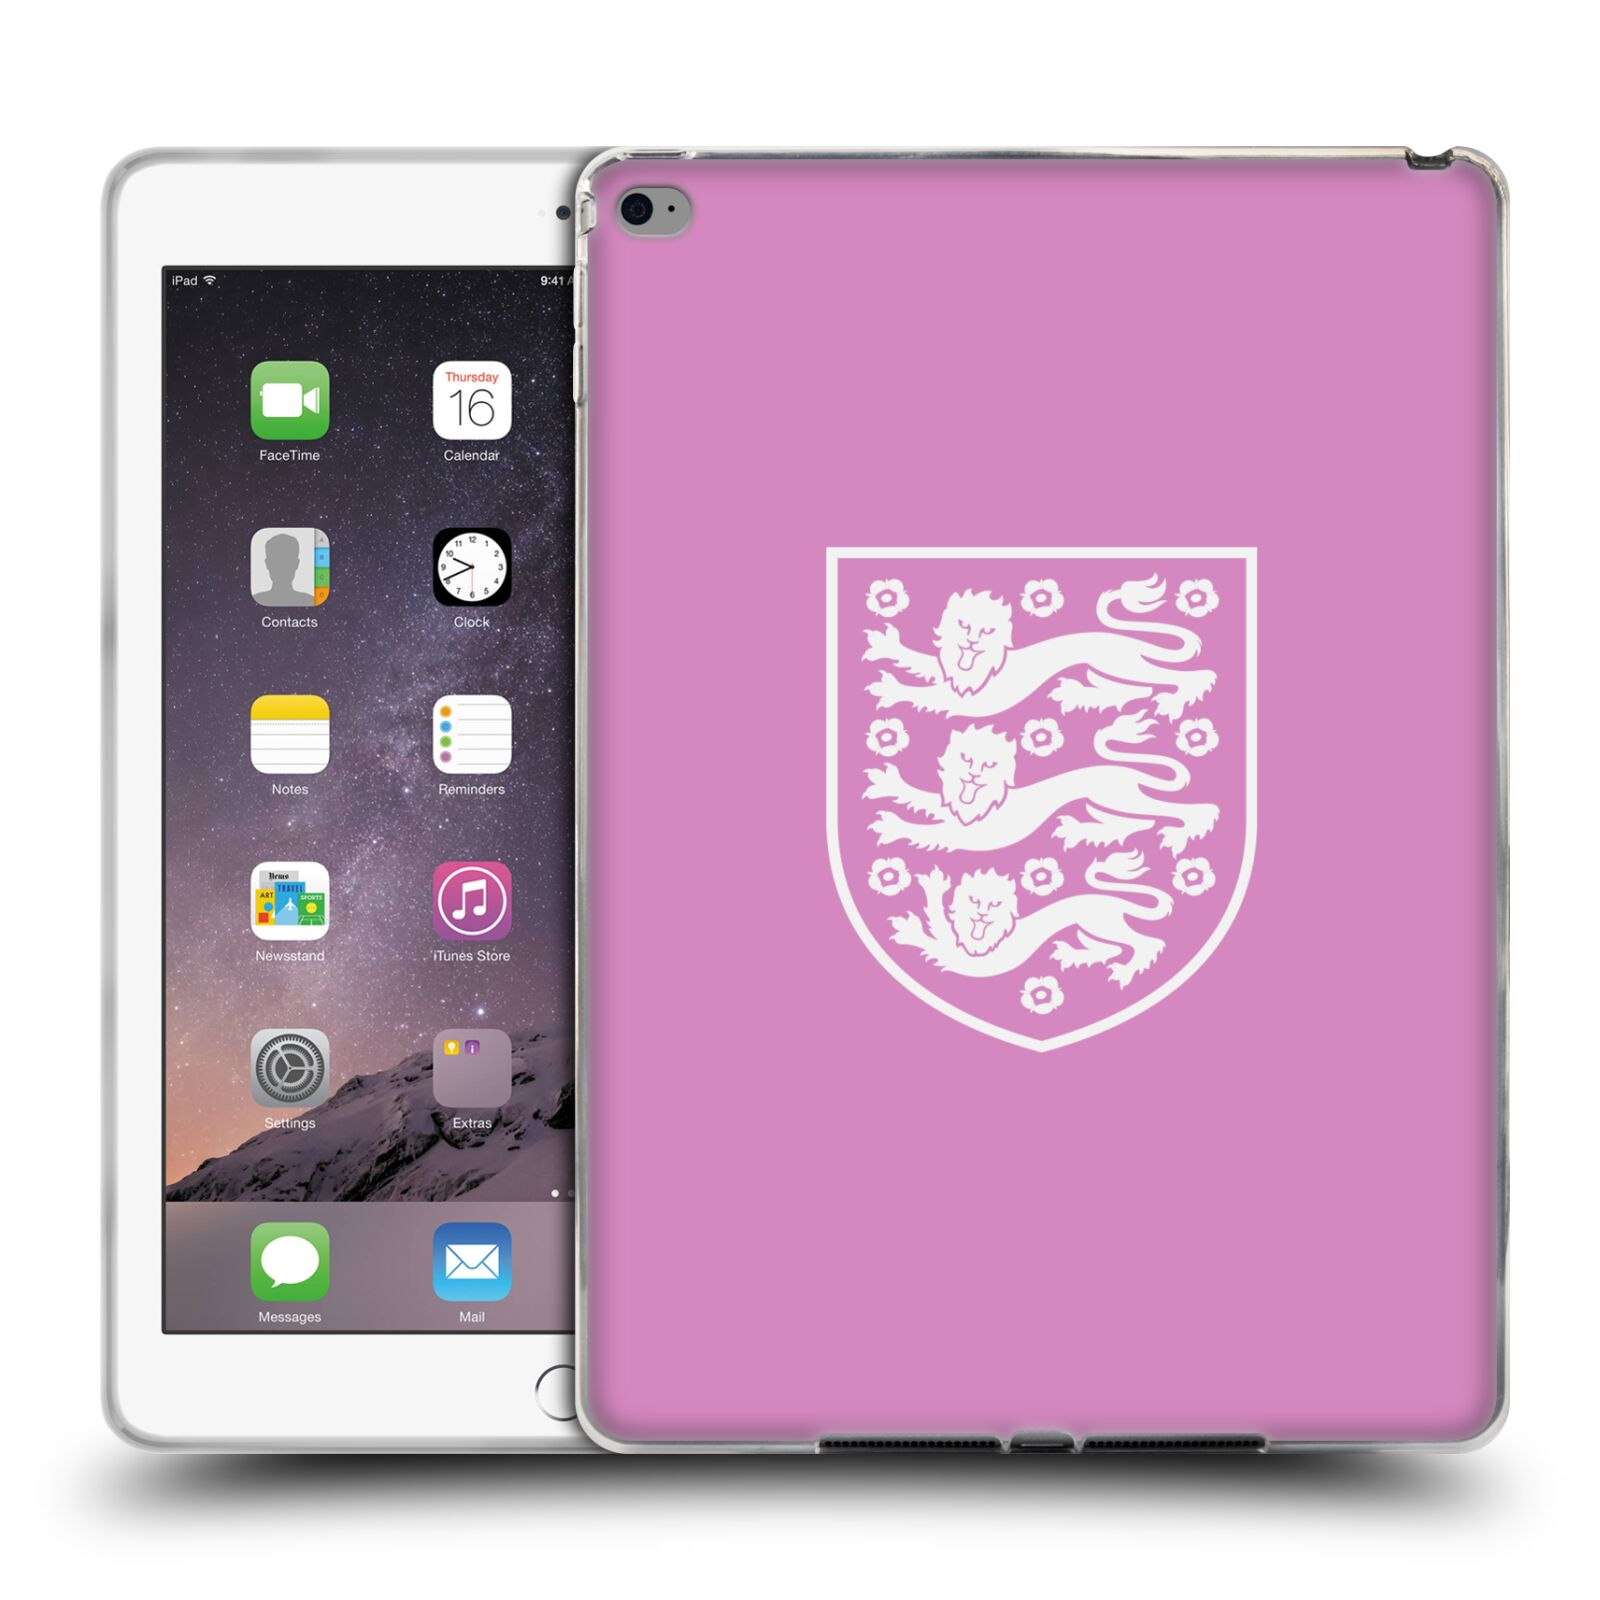 OFFICIAL-THE-FA-2017-18-CREST-SOFT-GEL-CASE-FOR-APPLE-SAMSUNG-TABLETS